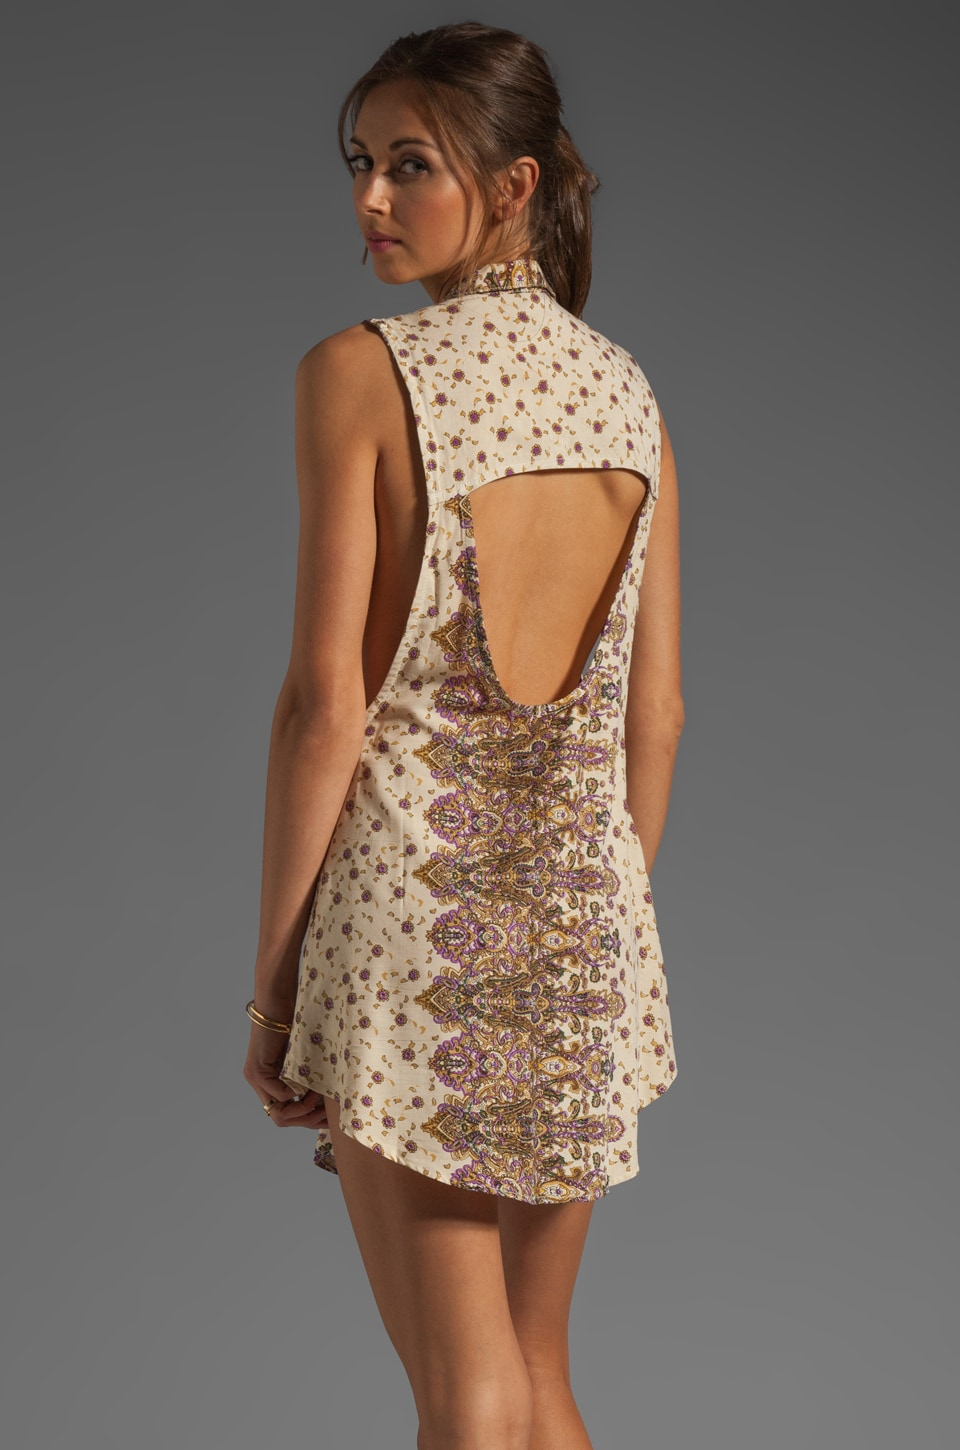 Tallow Mystere Dress in Paisley